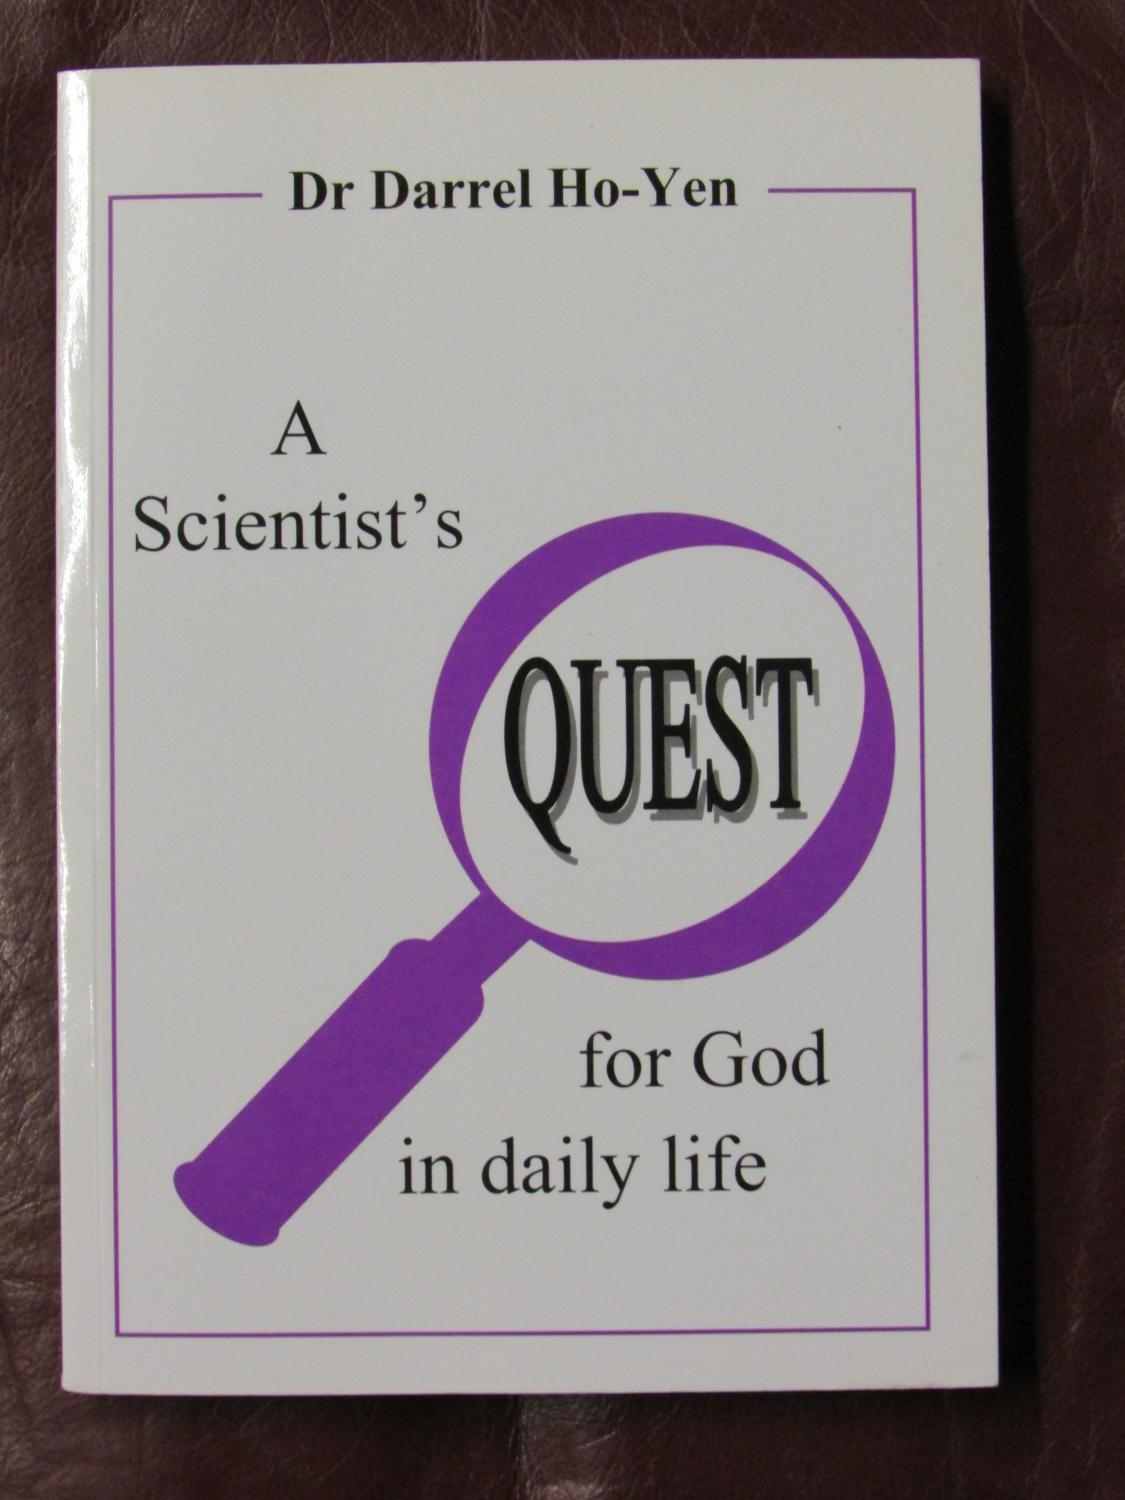 A Scientist's Quest for God in Daily Life - Dr Darrel HO-YEN